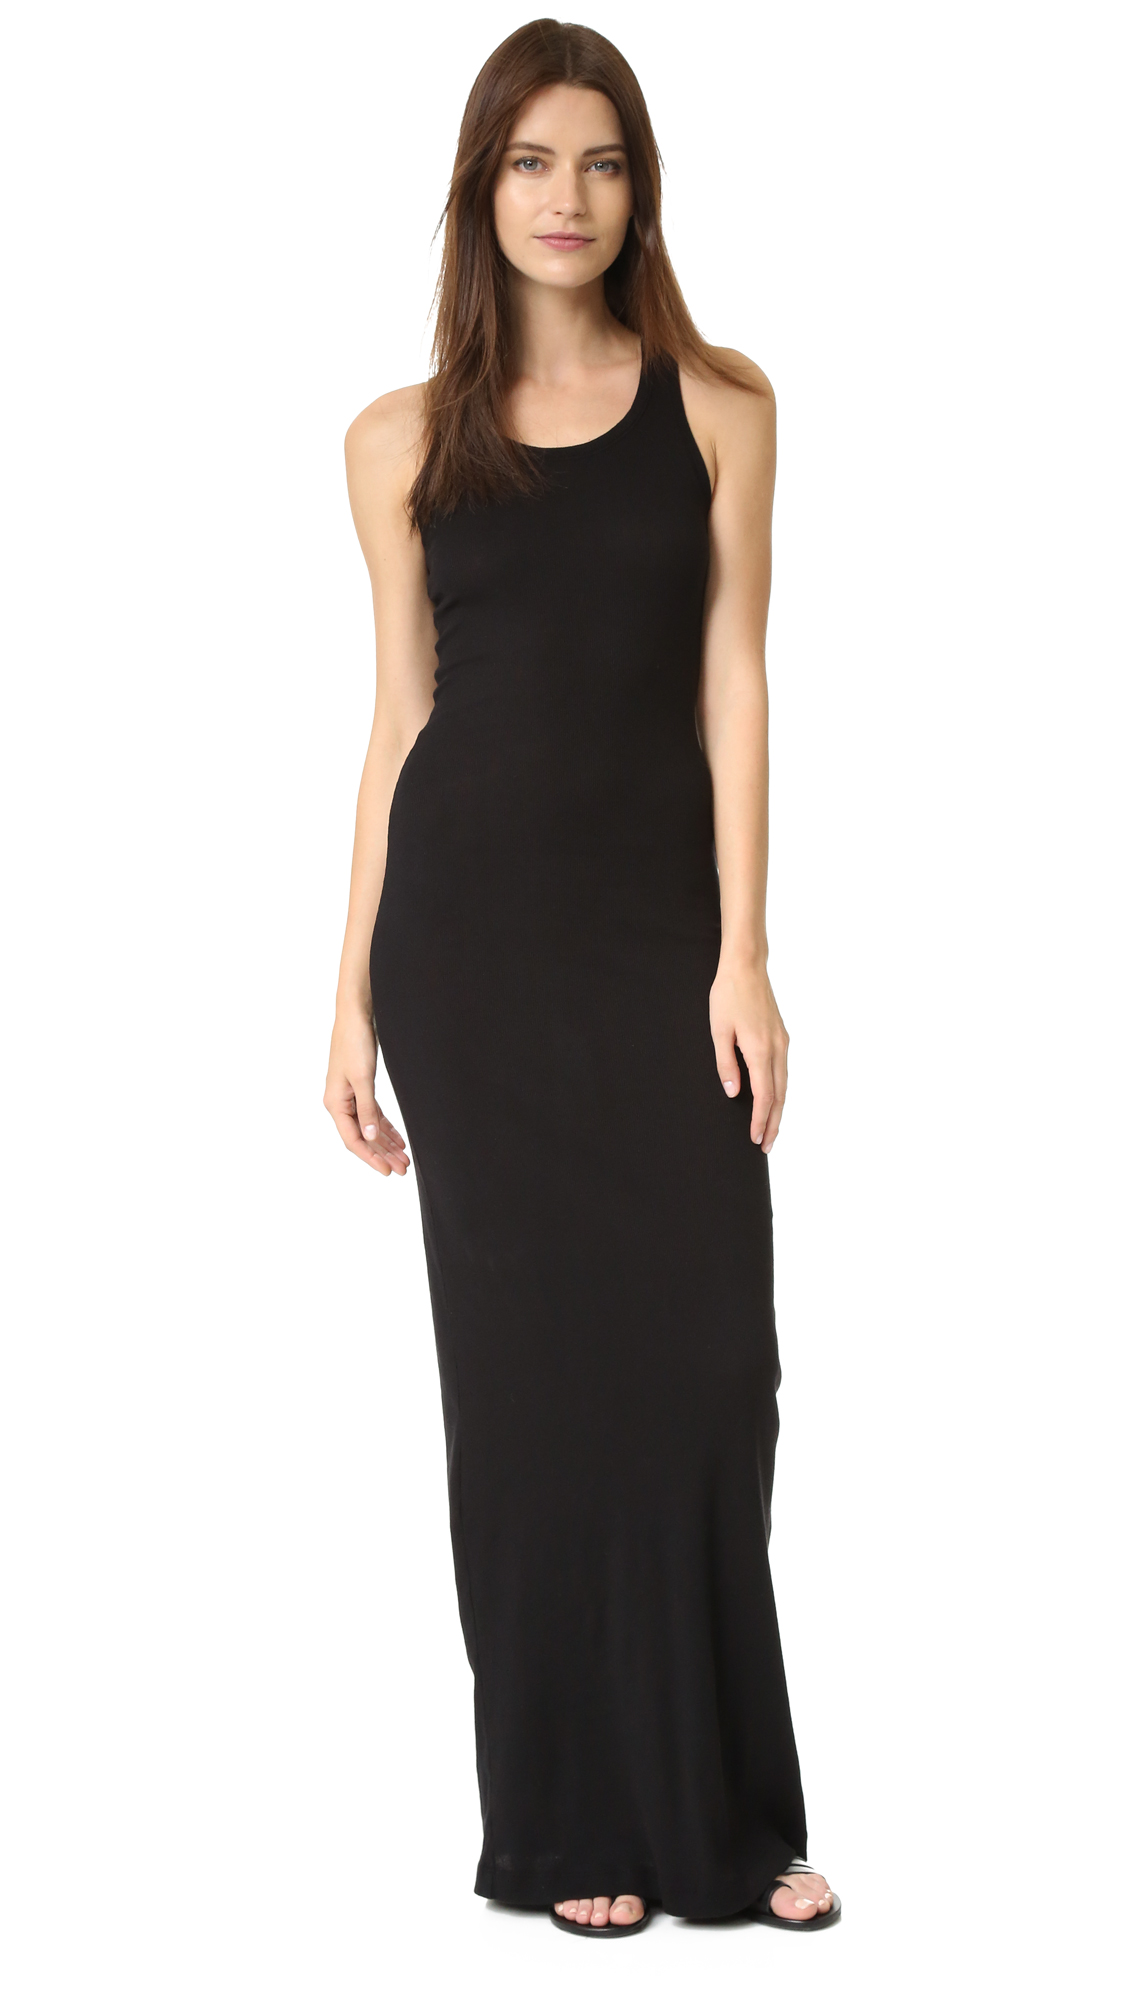 Splendid Ribbed Maxi Dress - Black